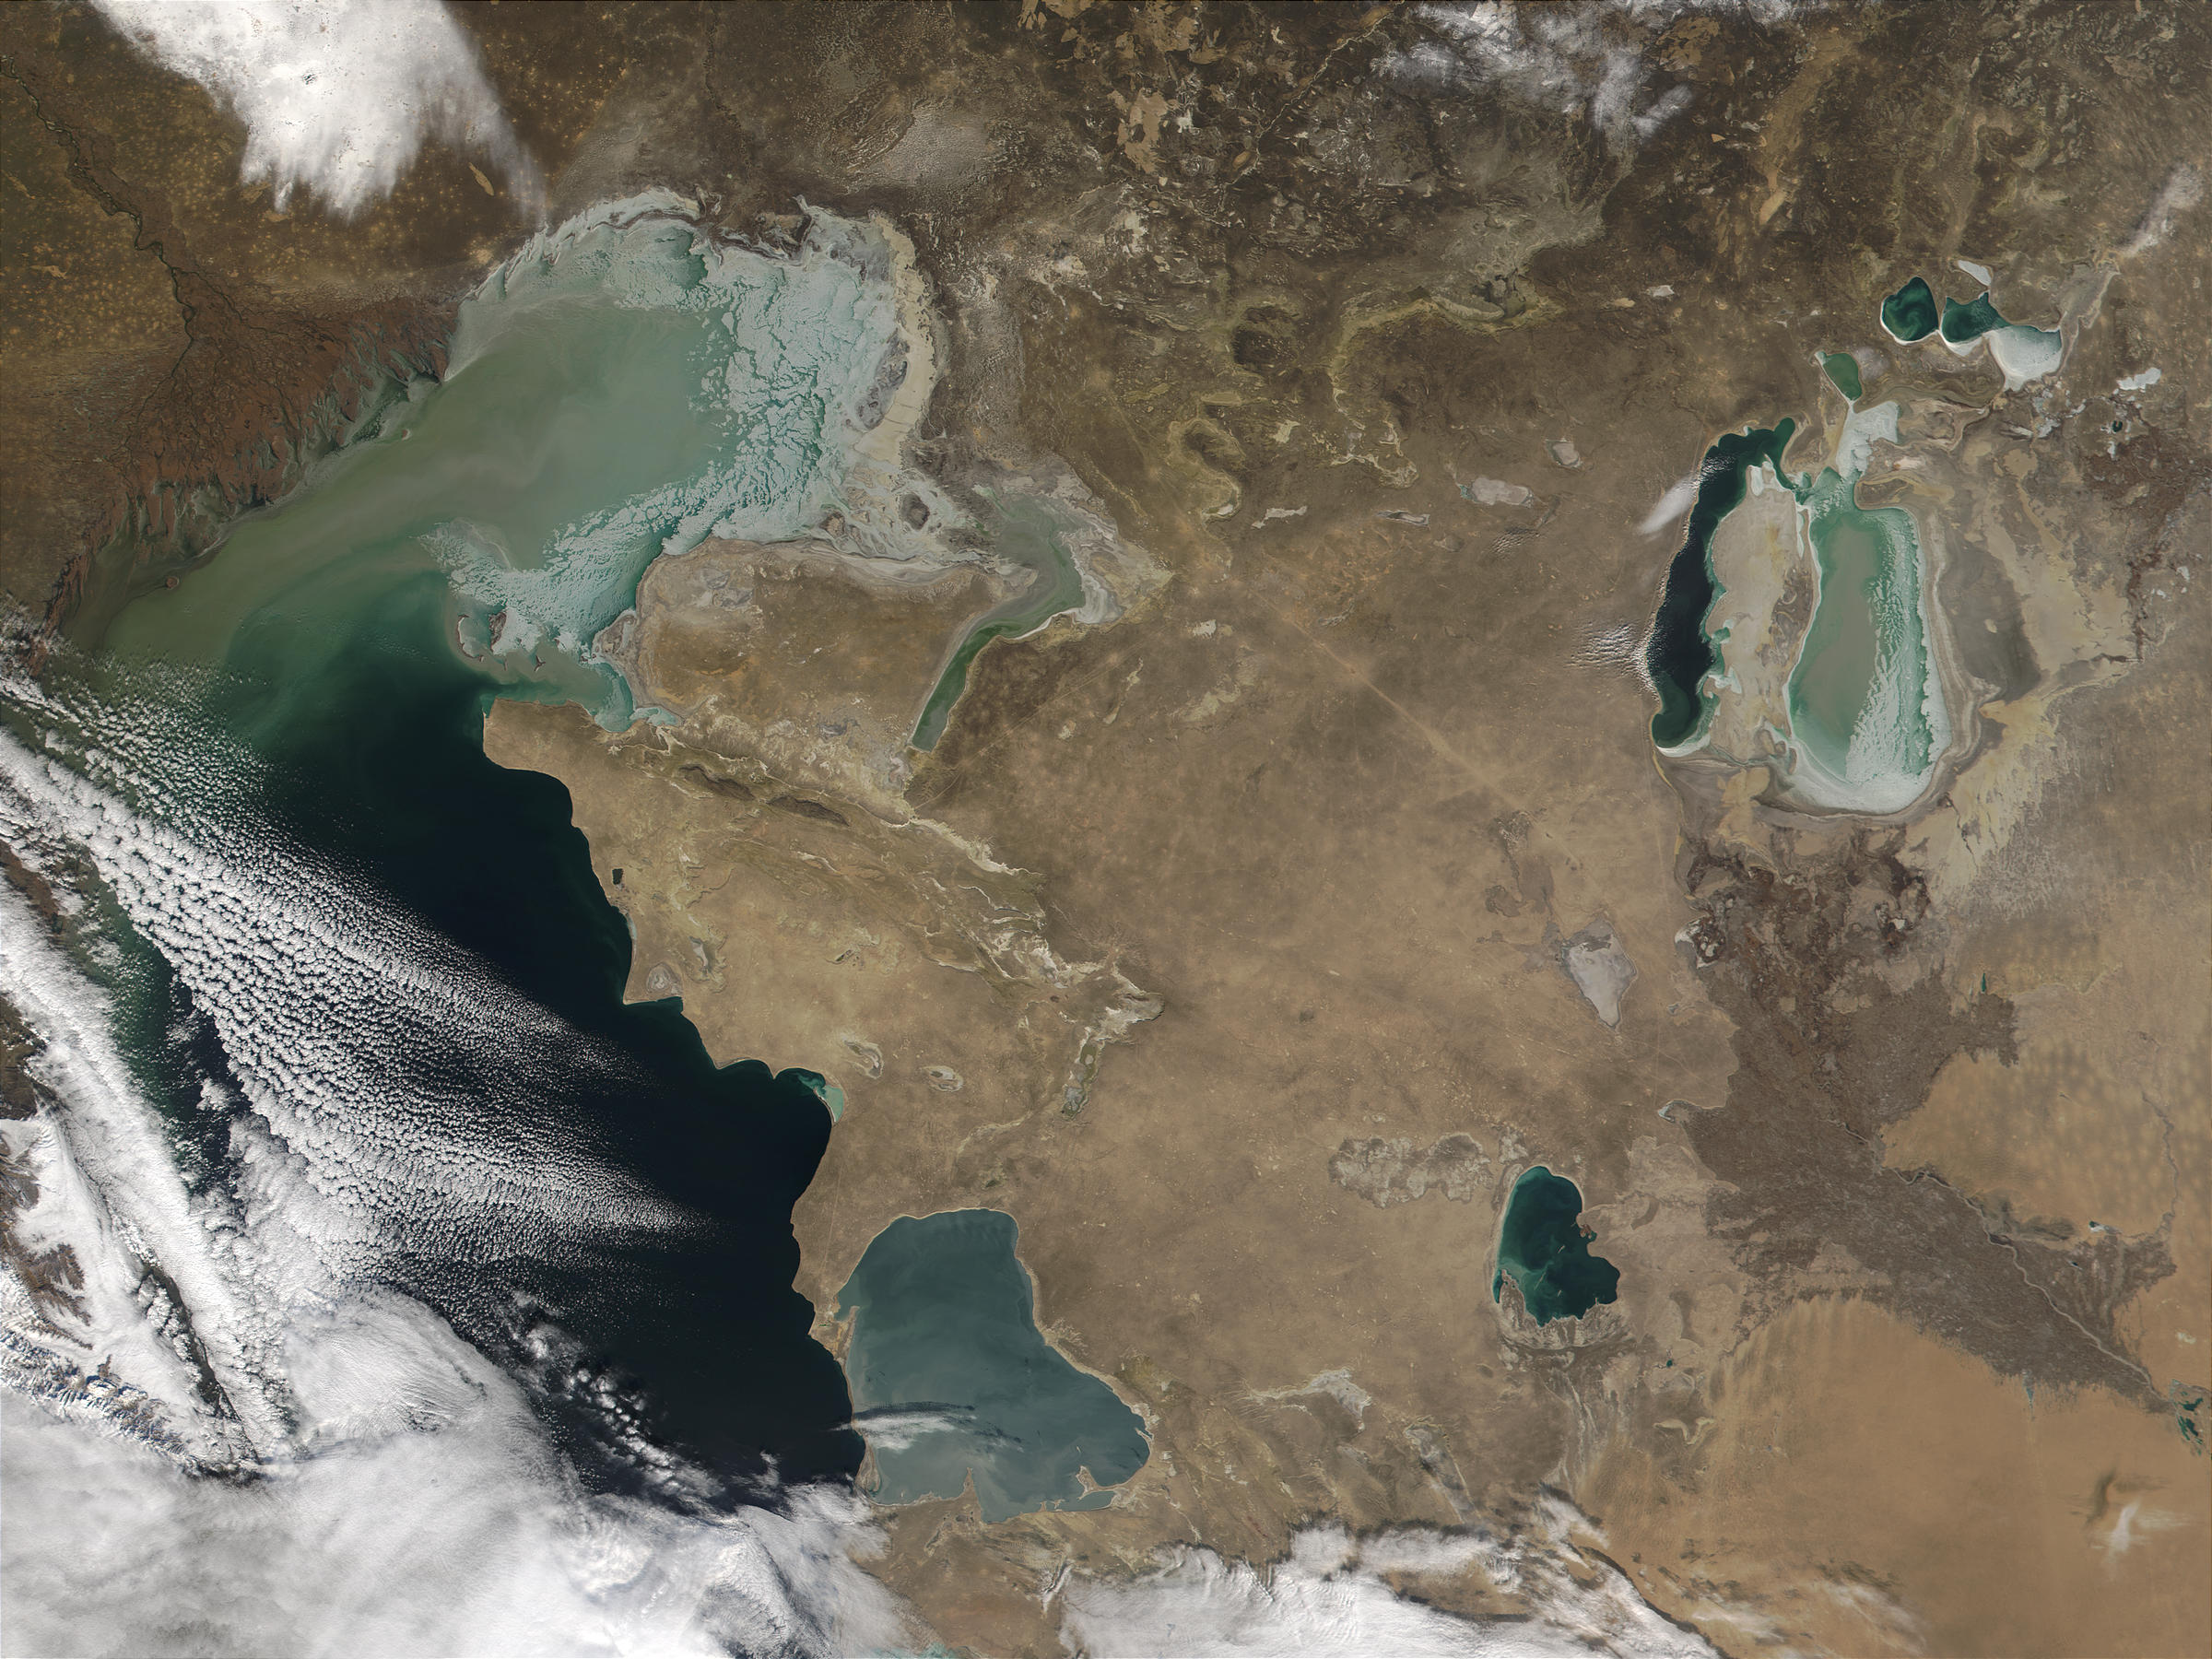 Ice in Caspian Sea and Aral Sea, Kazakhstan - related image preview